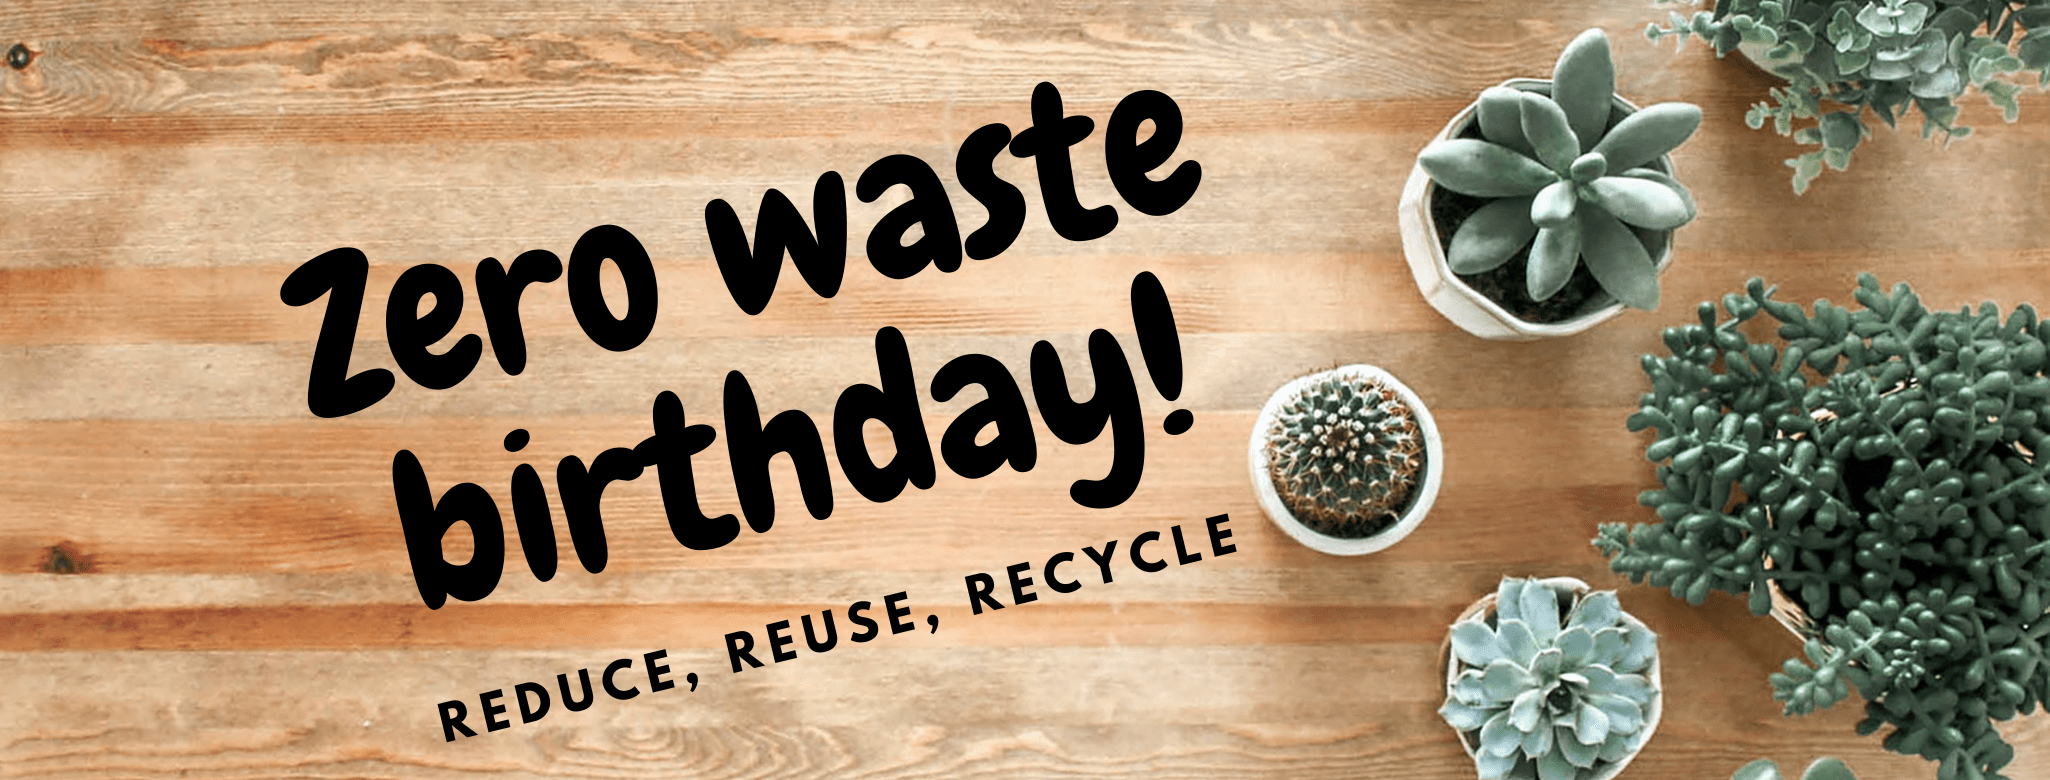 Zero Waste Birthday